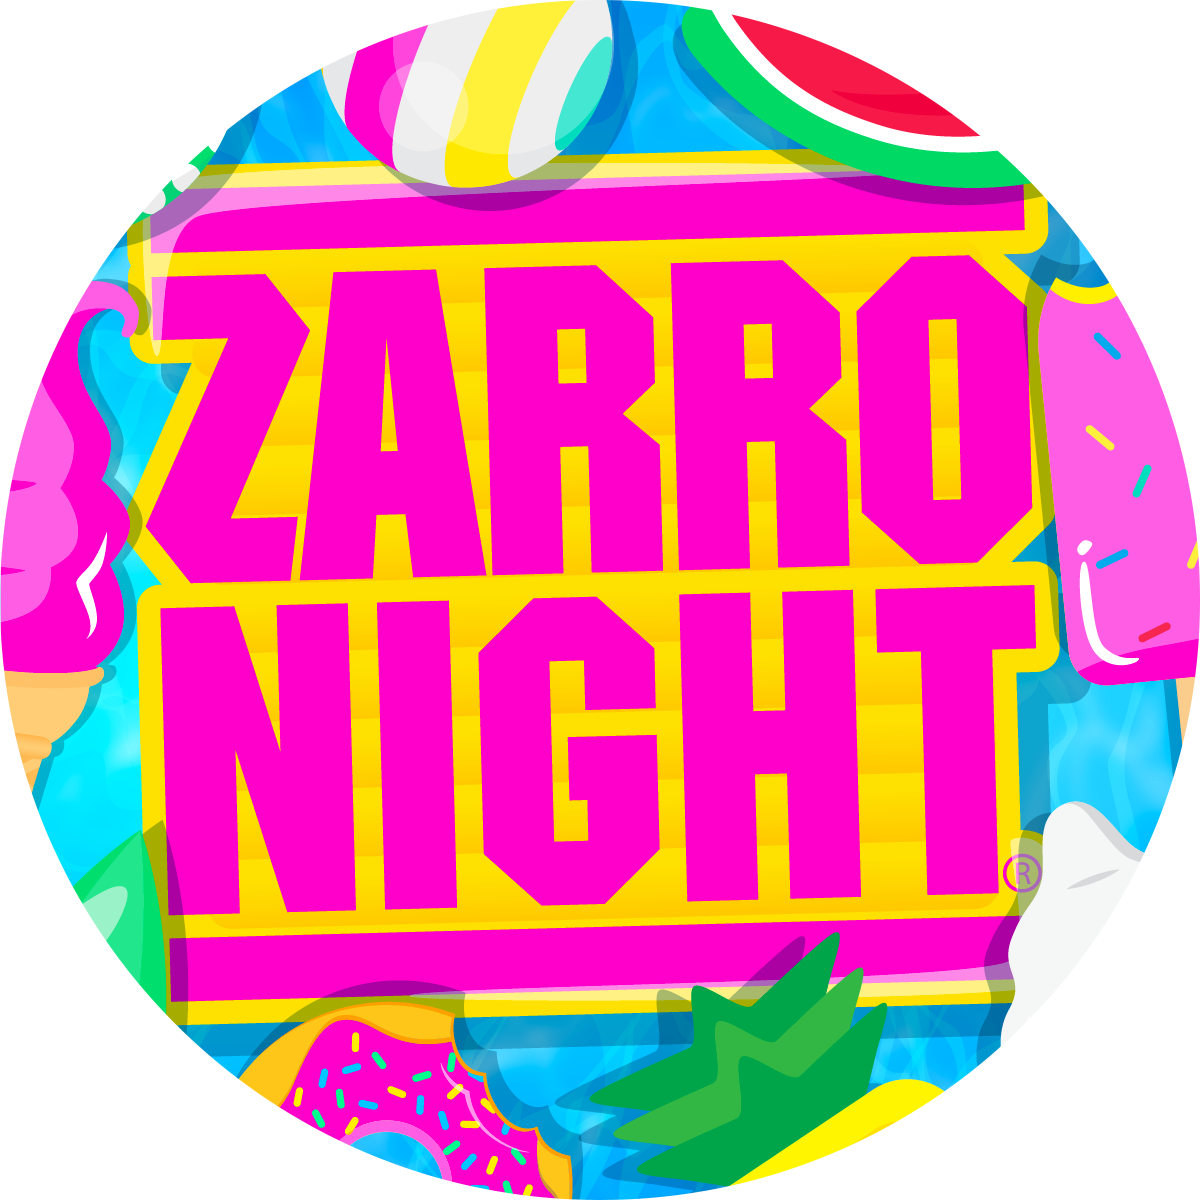 ZARRO NIGHT